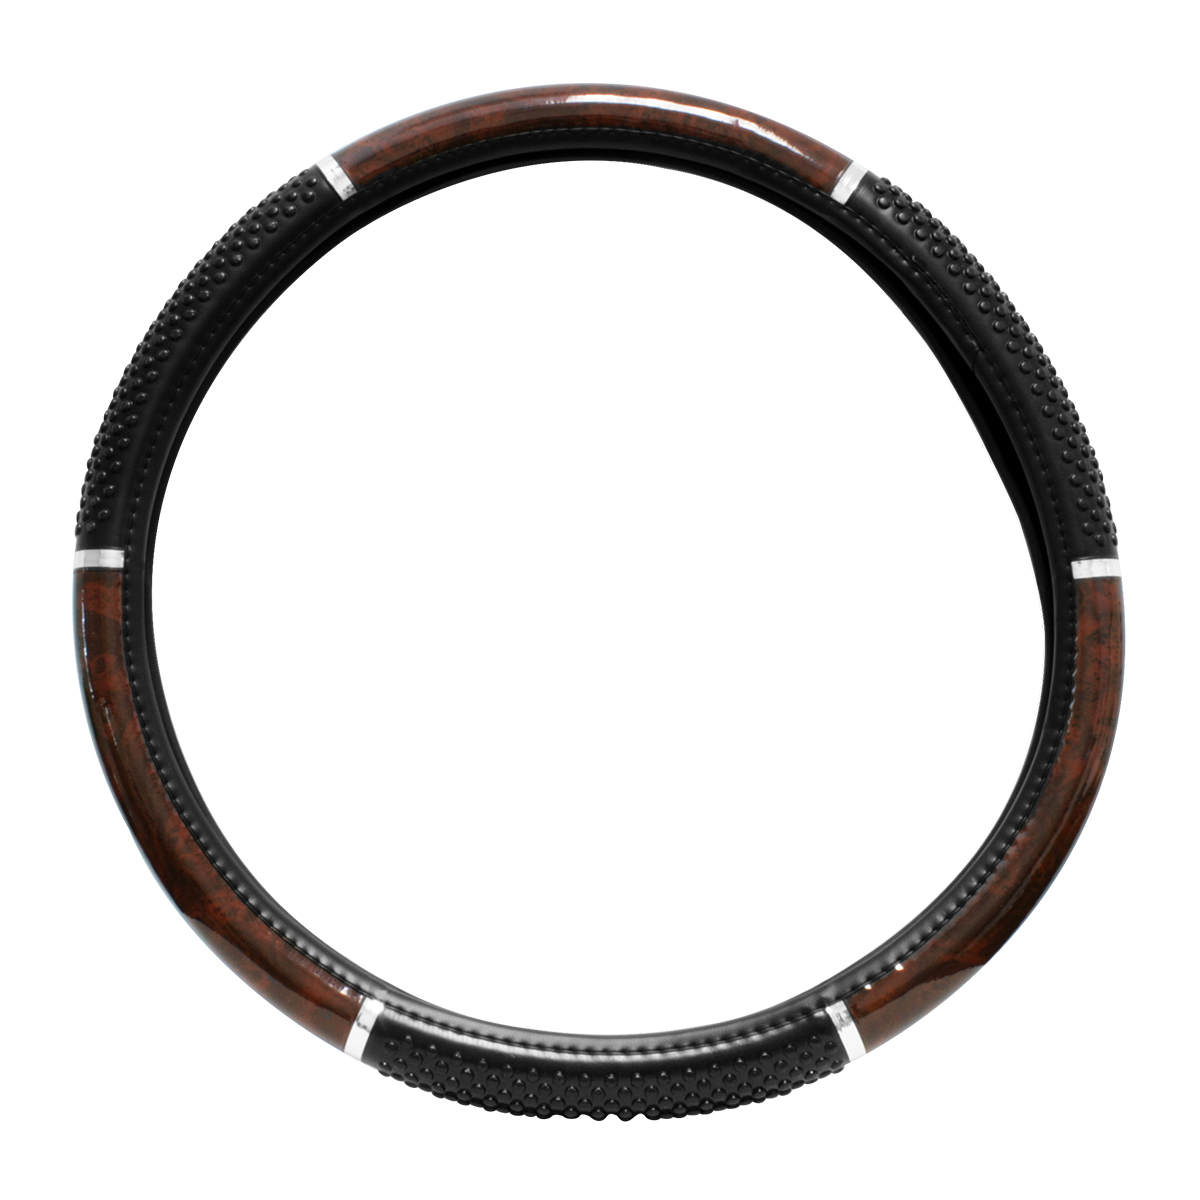 "54041 Medium Duty 18"" Steering Wheel Cover"